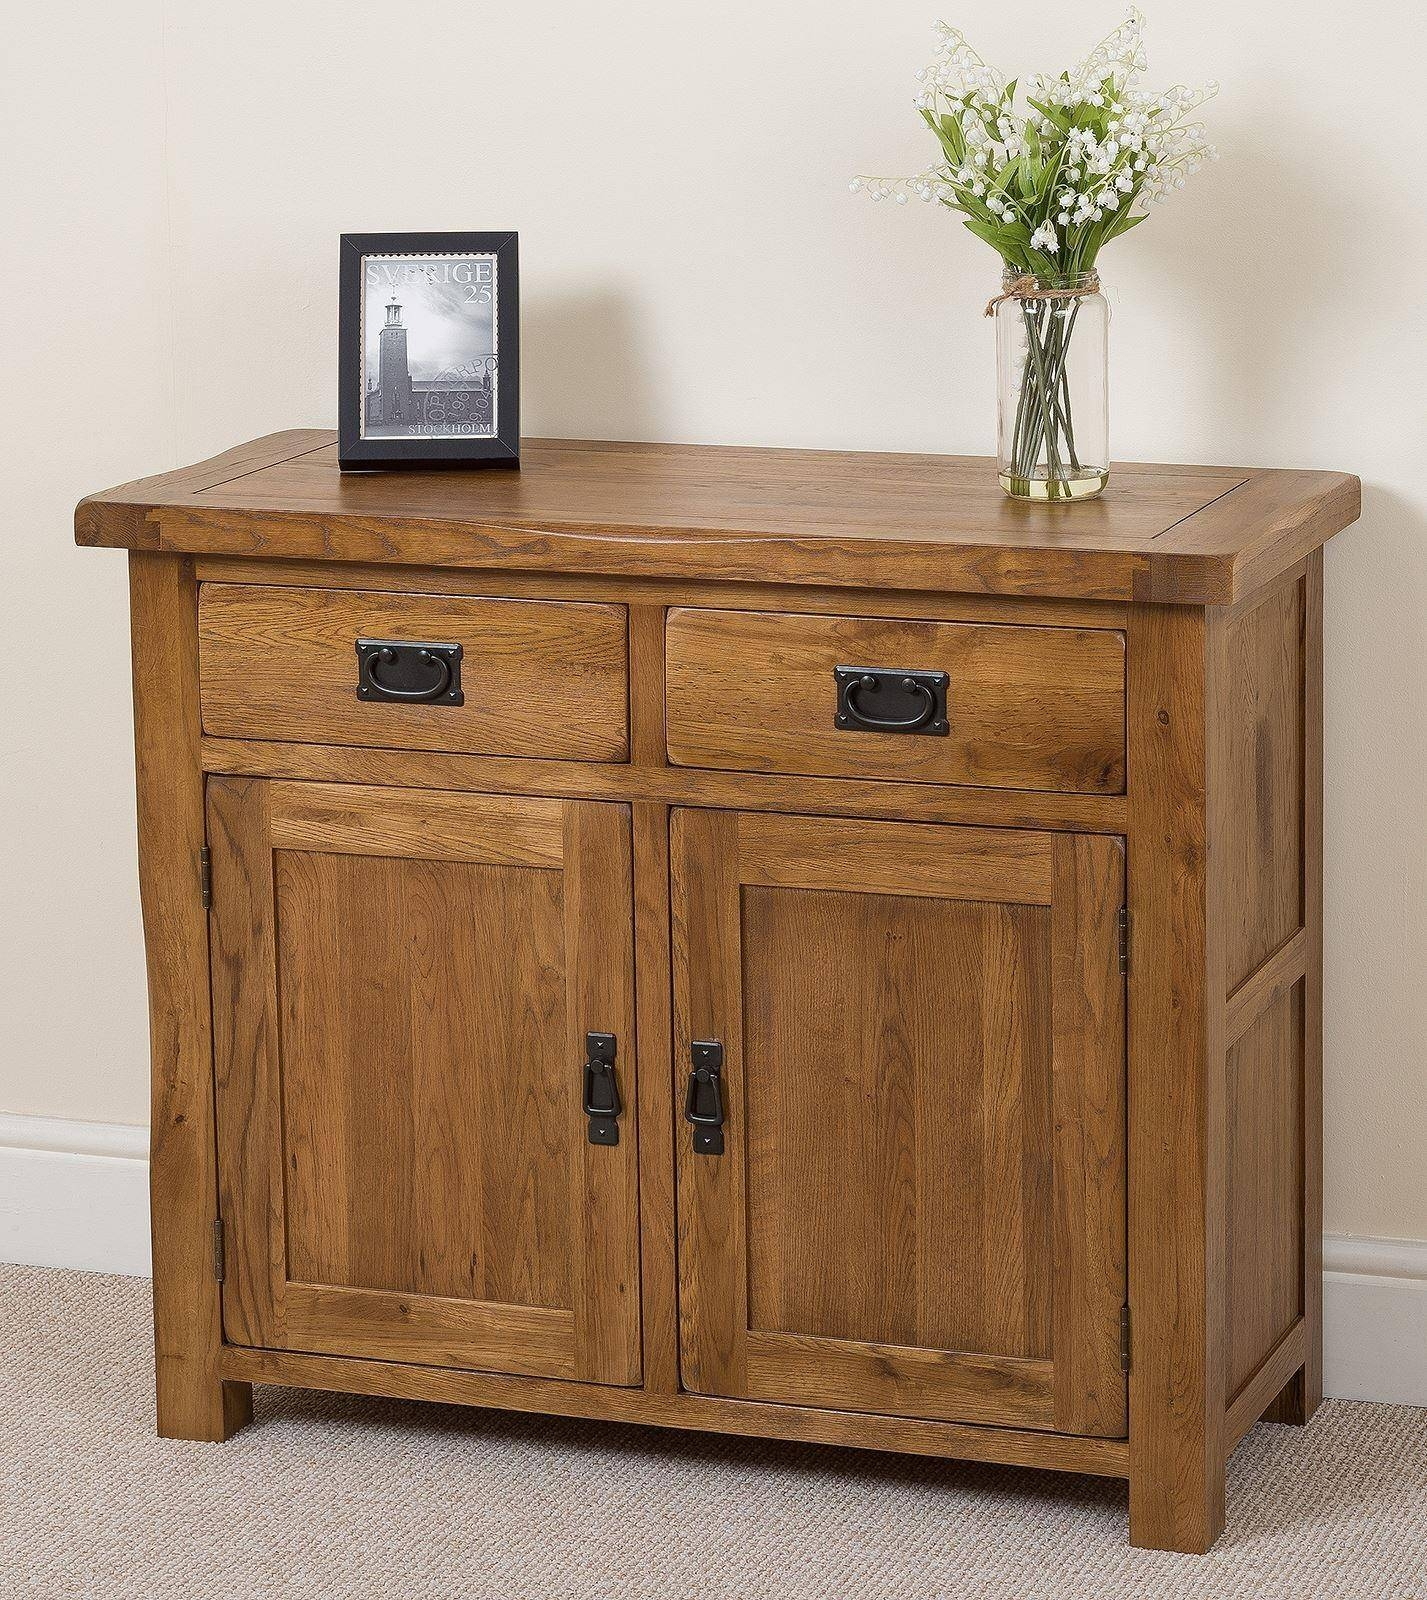 Decor: Reclaimed Wood Buffet And Rustic Sideboard For Reclaimed Oak Sideboards (View 7 of 15)